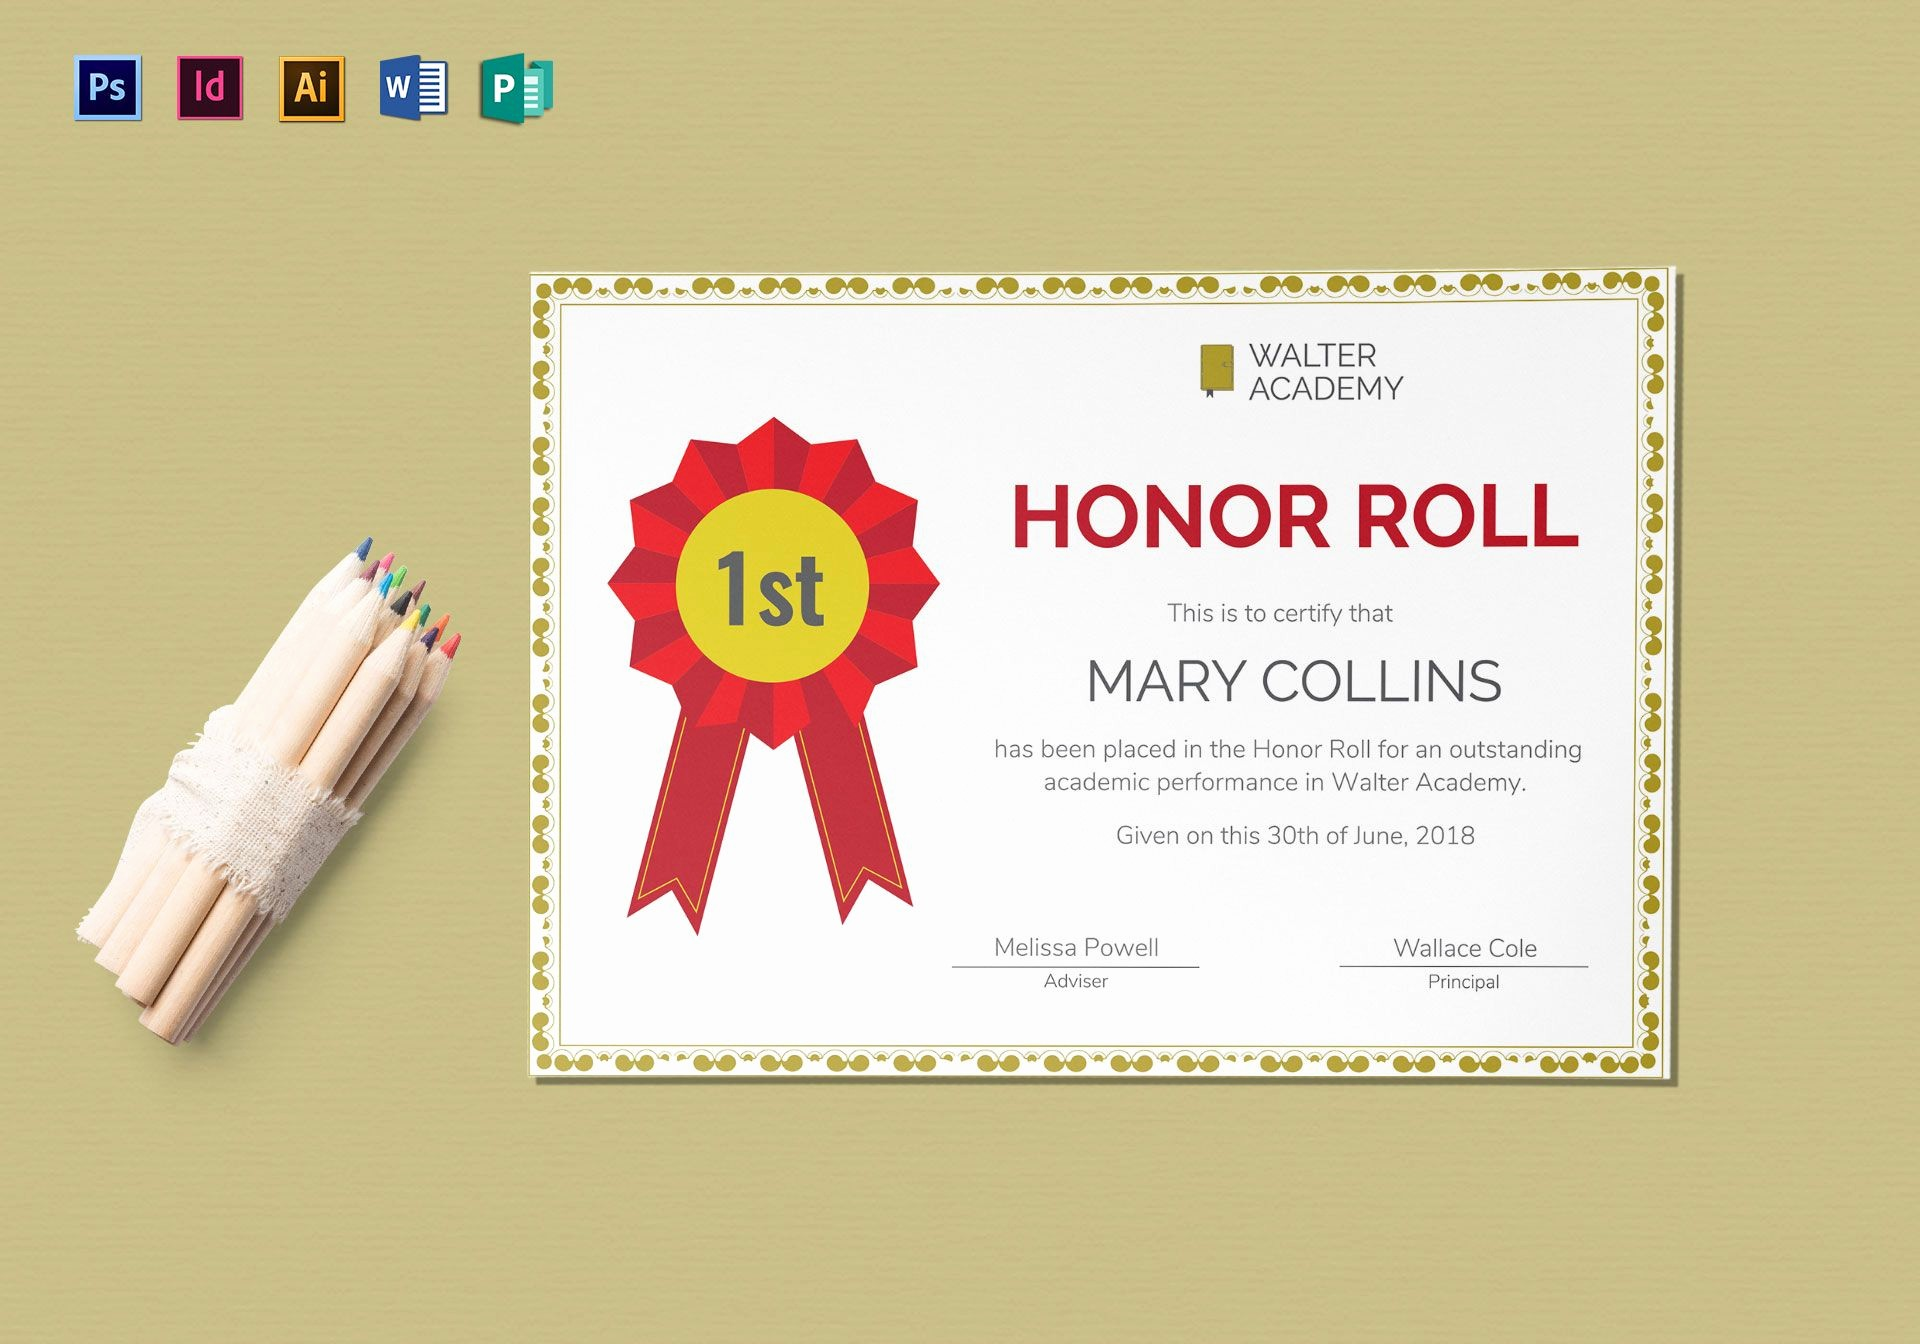 Honor Roll Certificate Template Word New Honor Roll Certificate Design Template In Psd Word